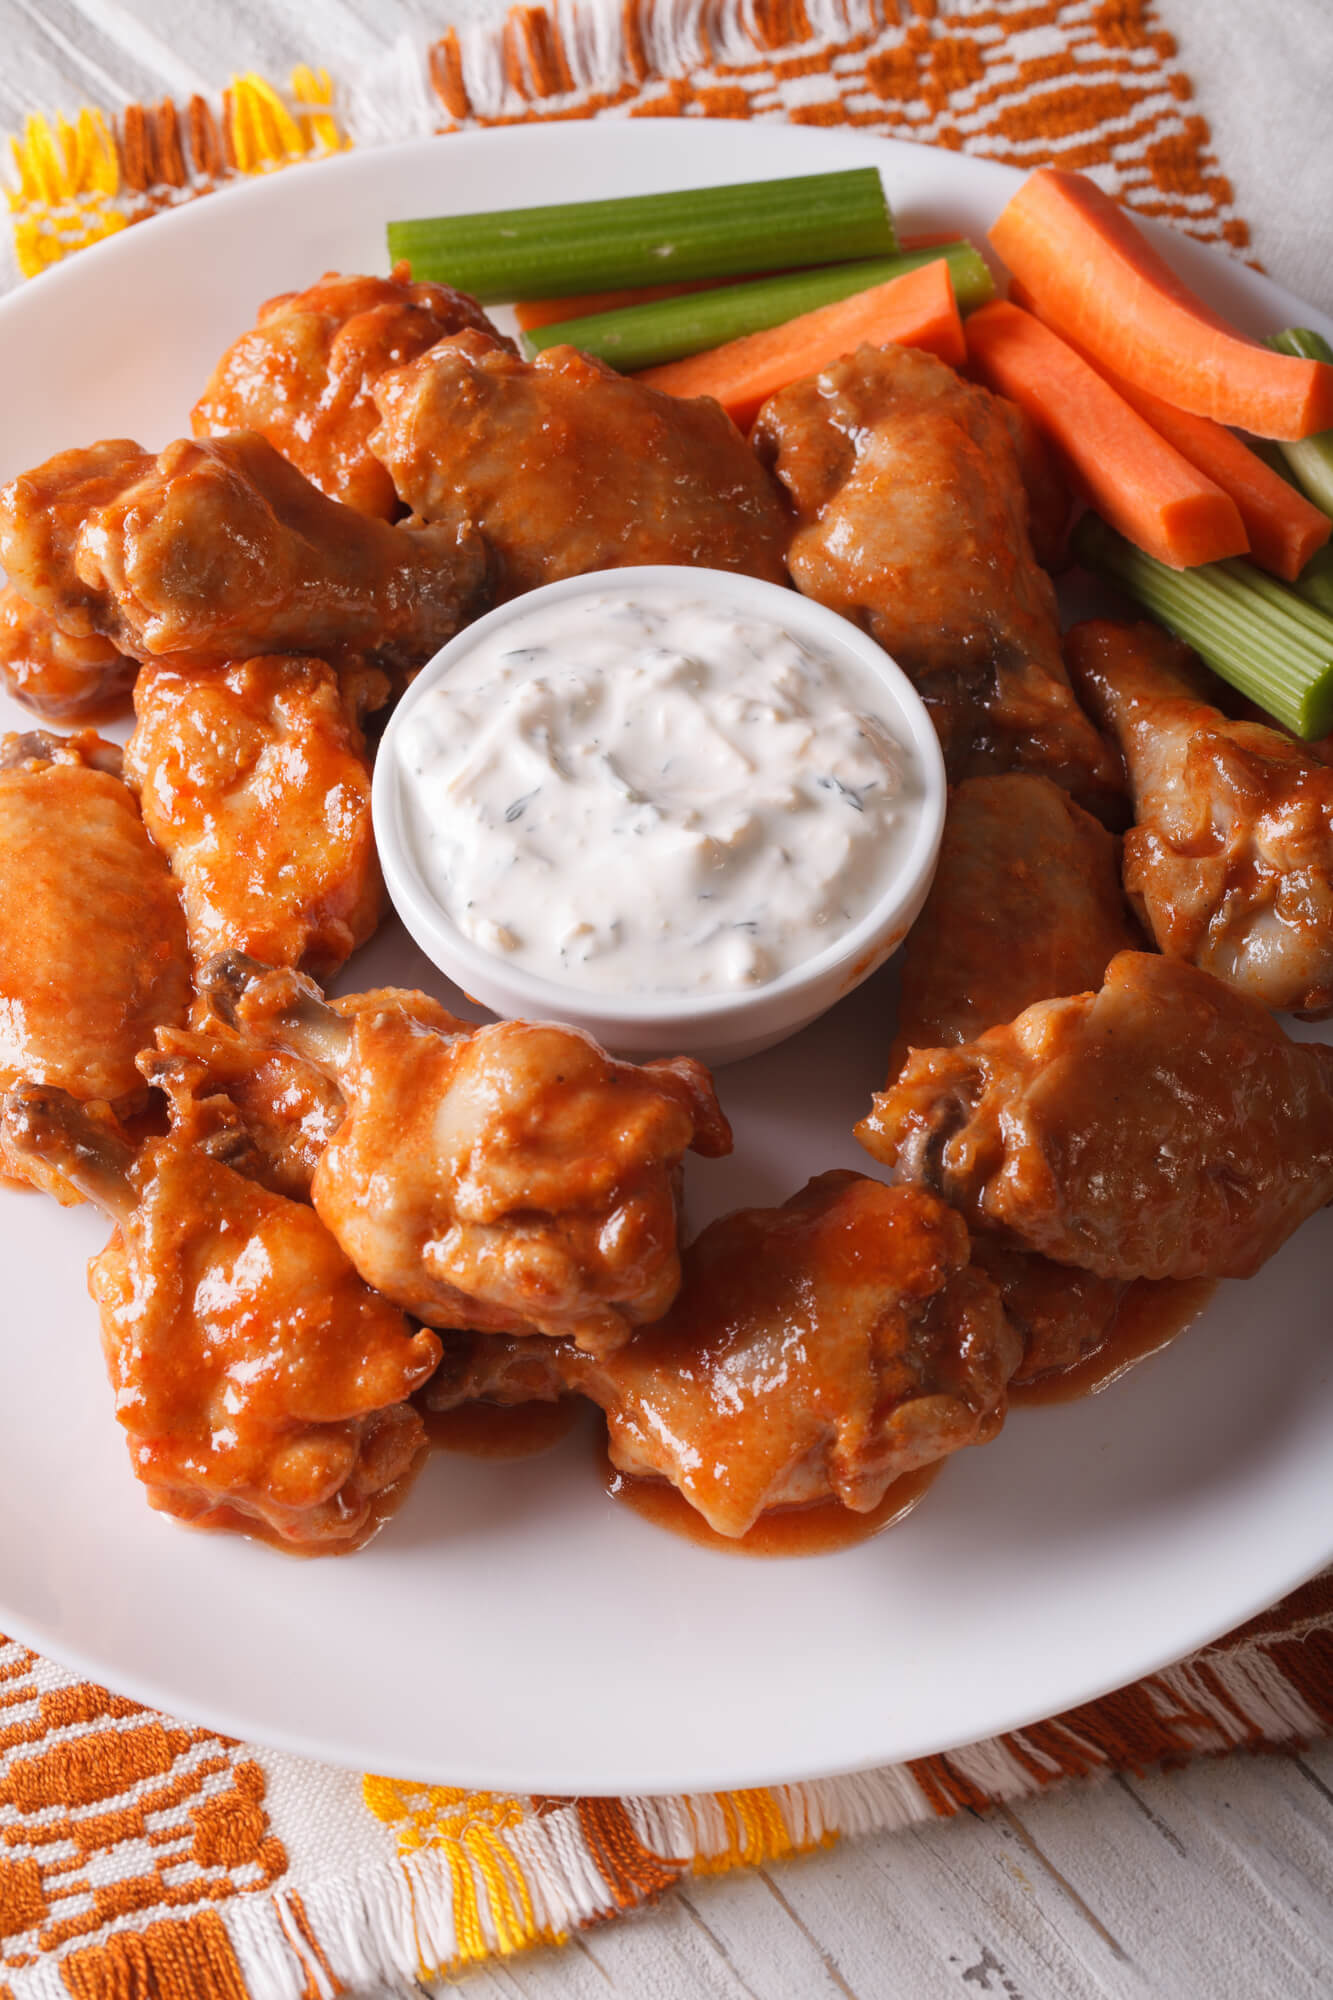 Baked buffalo wings recipe with ranch dressing on a red napkin.